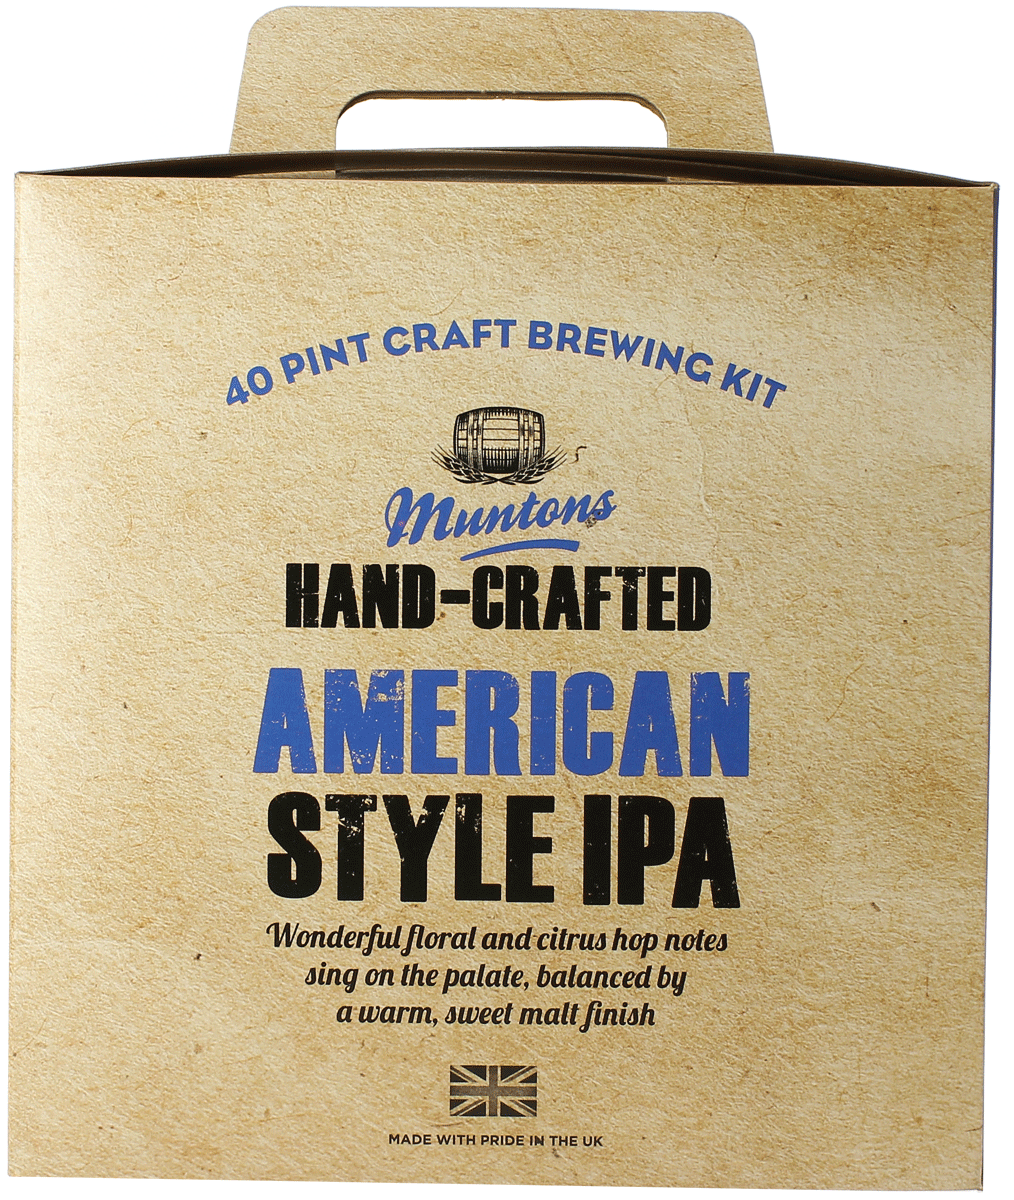 Kit à bières Muntons Hand-Crafted American Style IPA